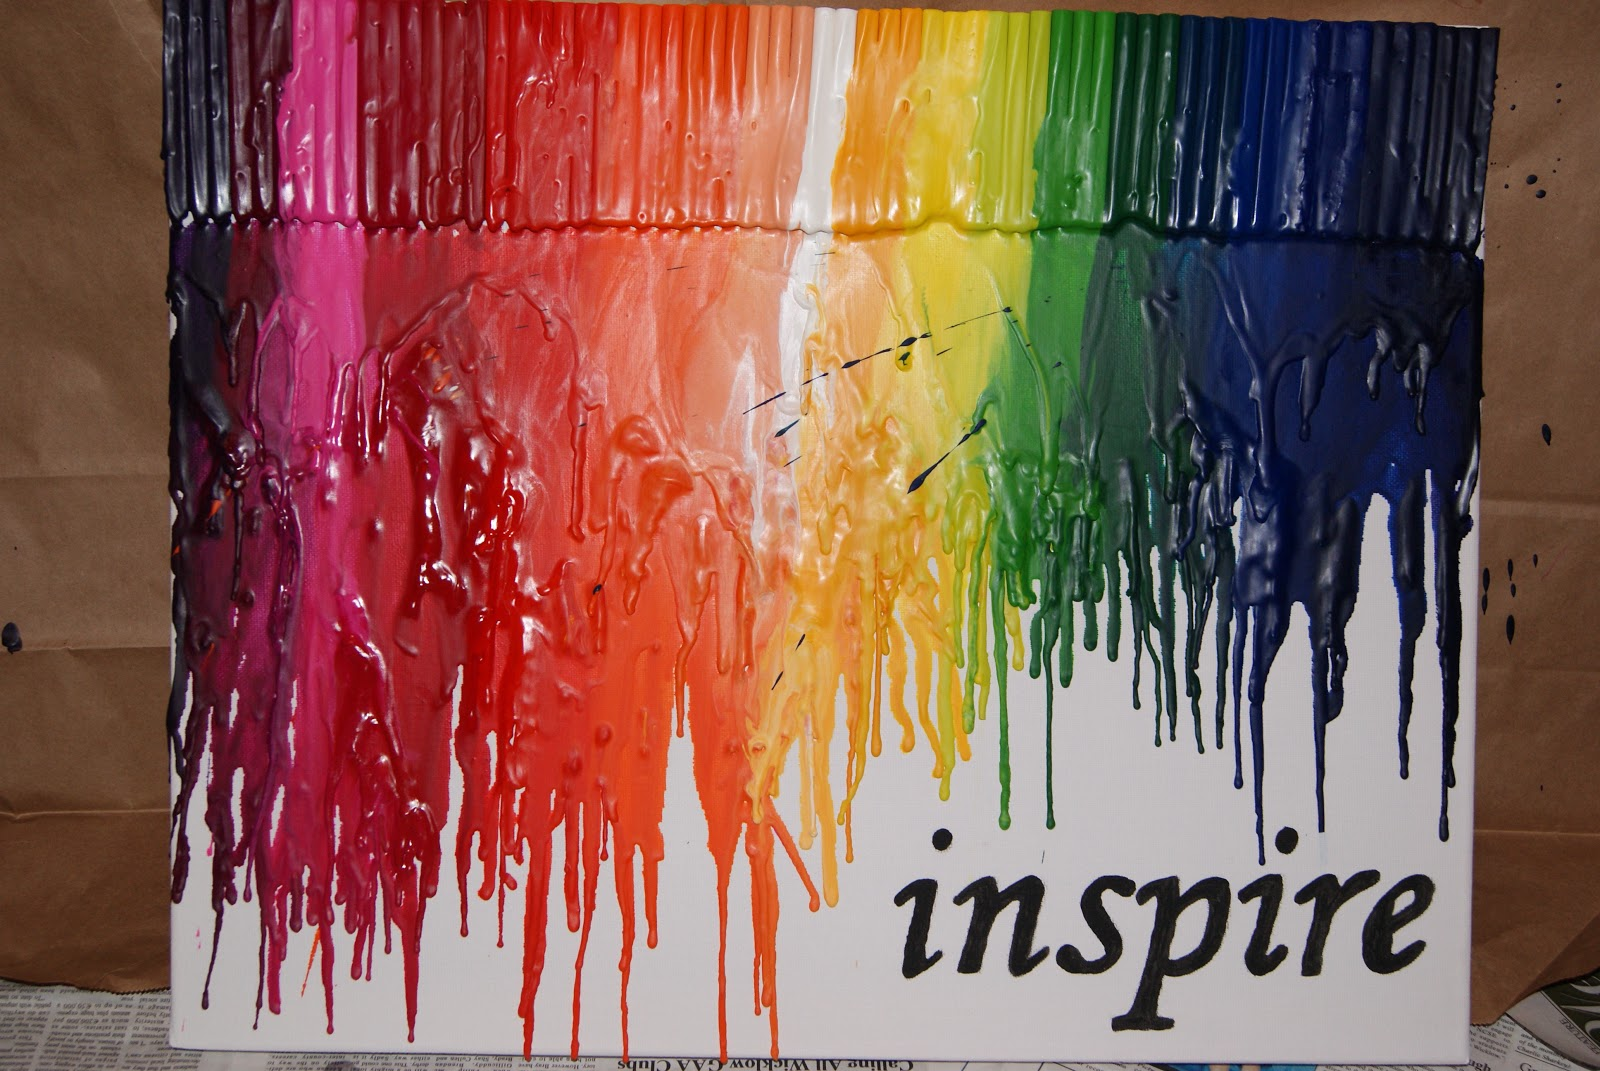 Bilder Zum Malen Auf Leinwand Being Inspired: Day 12 - Melted Crayon Art